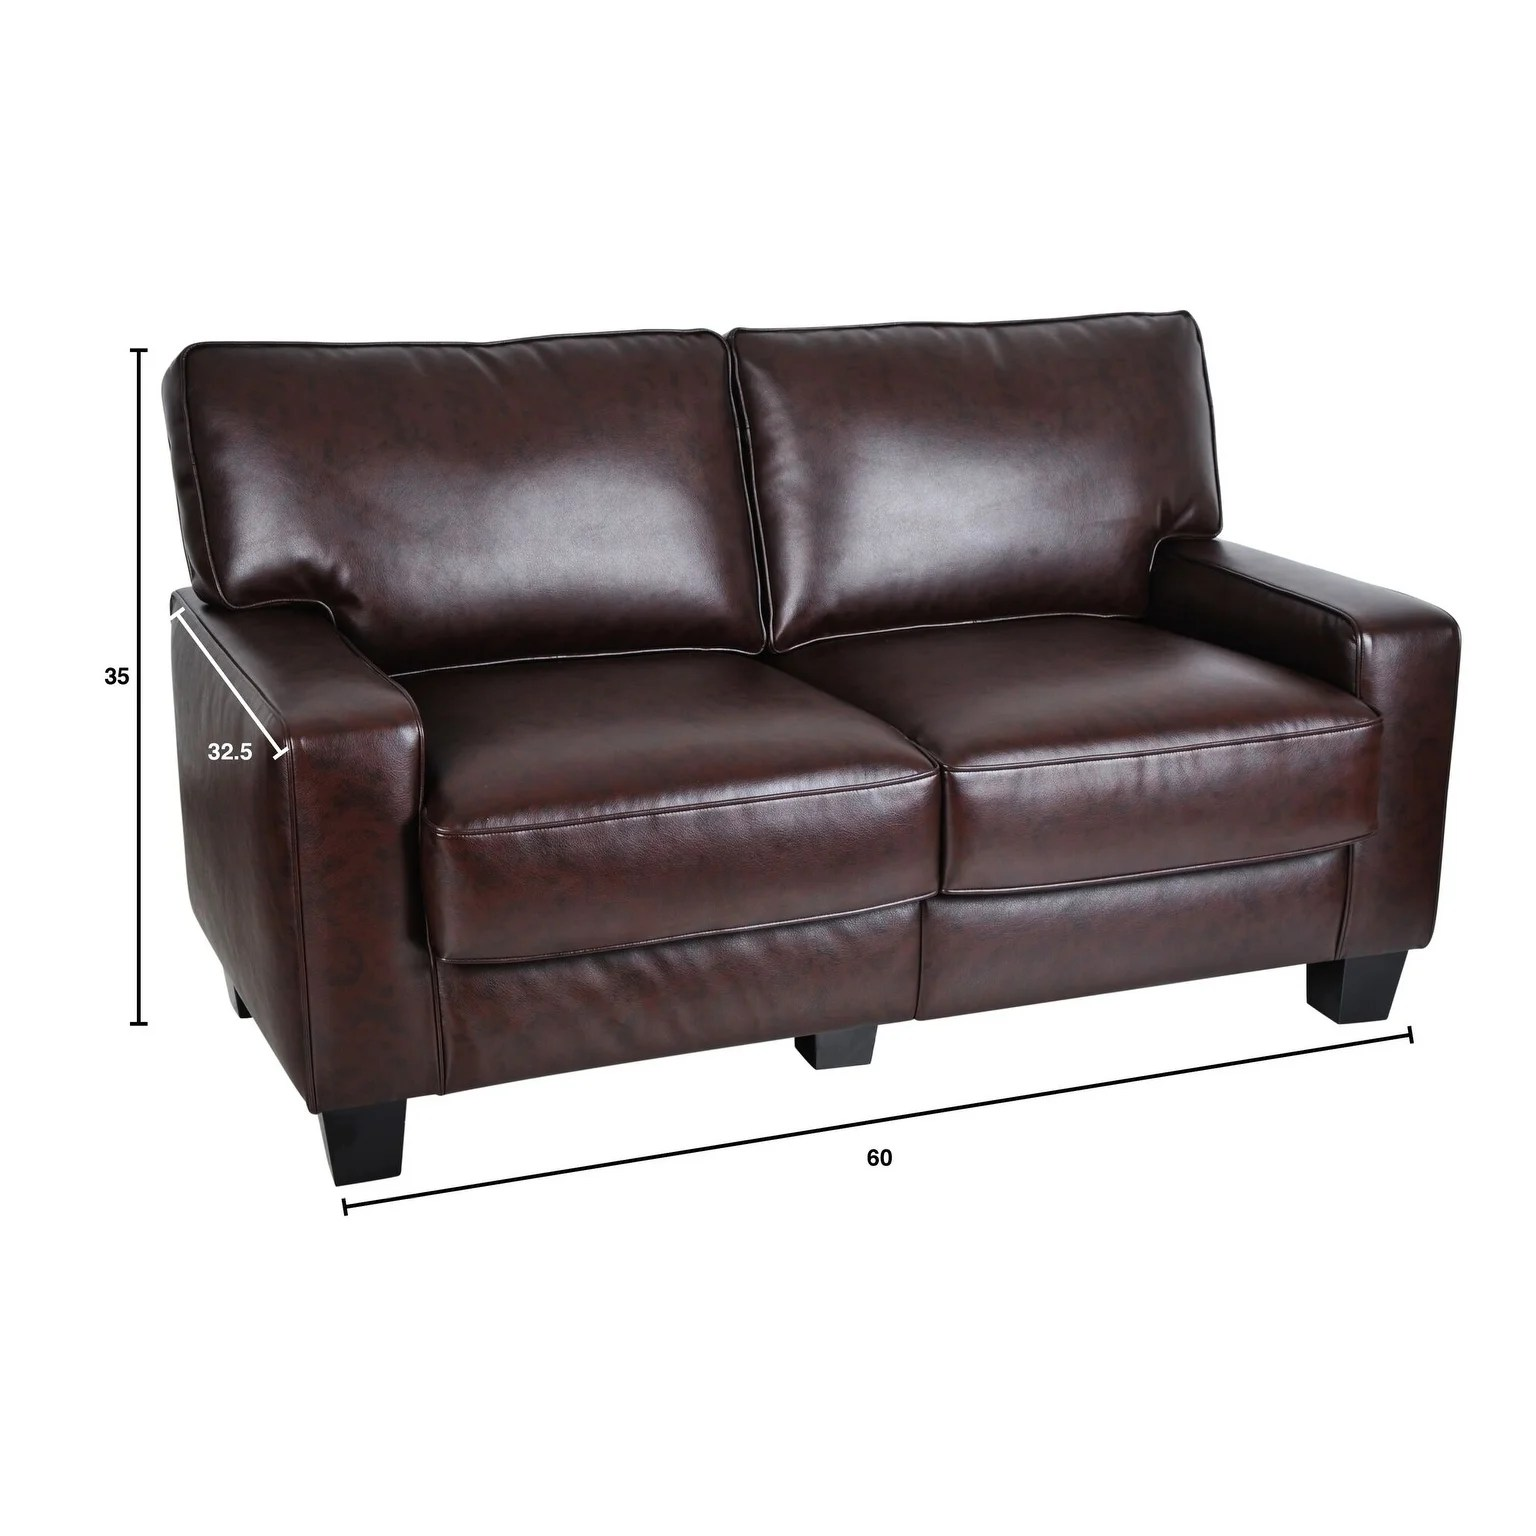 Sofa 60er Serta Rta Monaco Collection 60 Inch Brown Leather Sofa